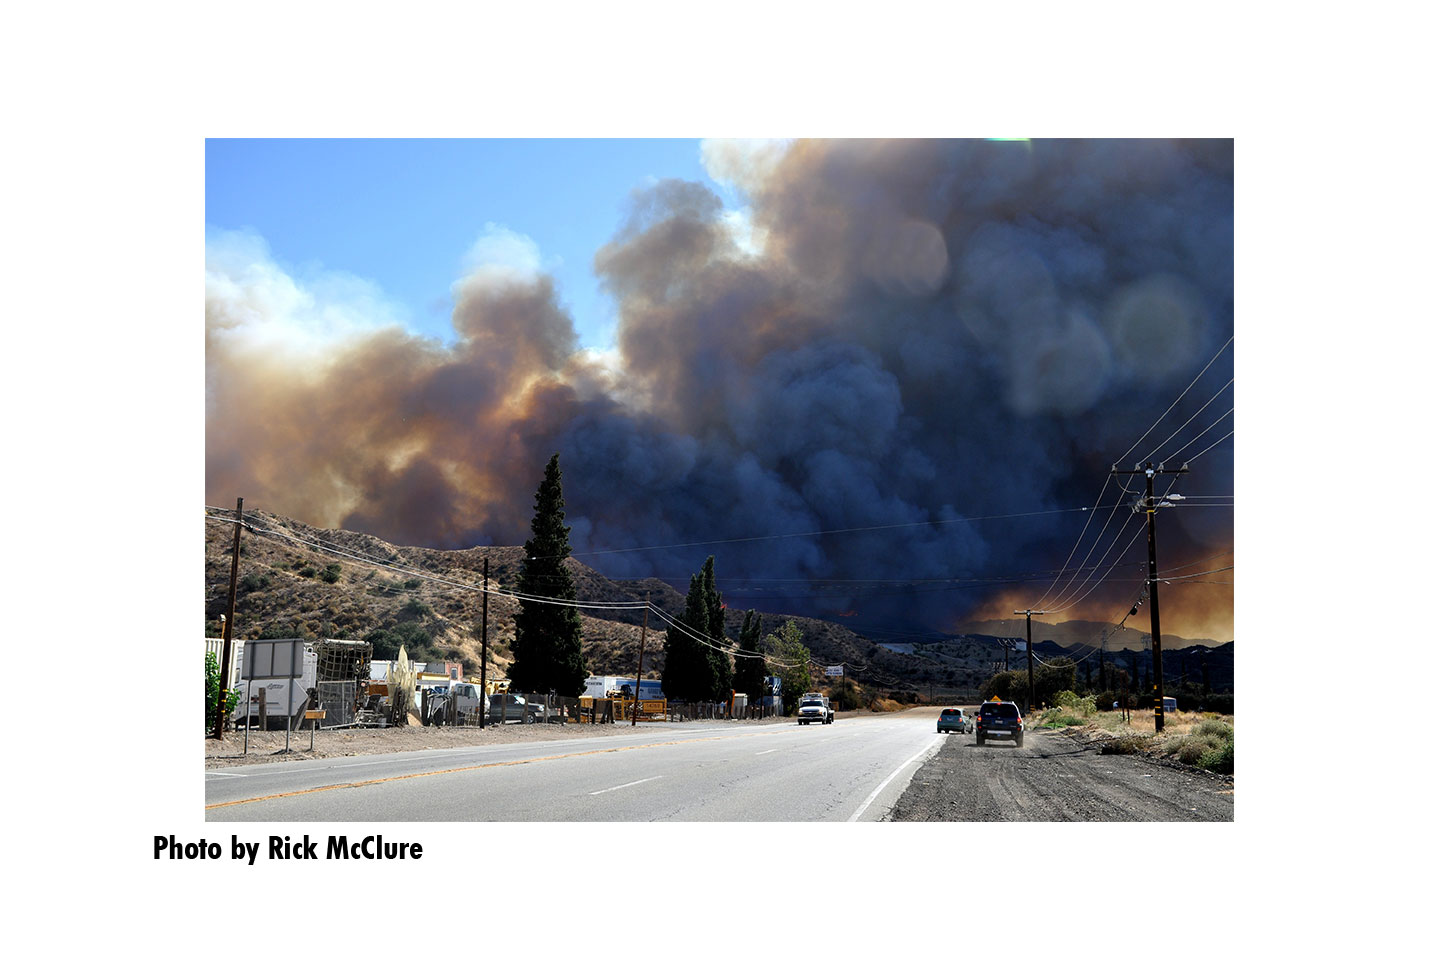 A giant plume of smoke hangs over the road